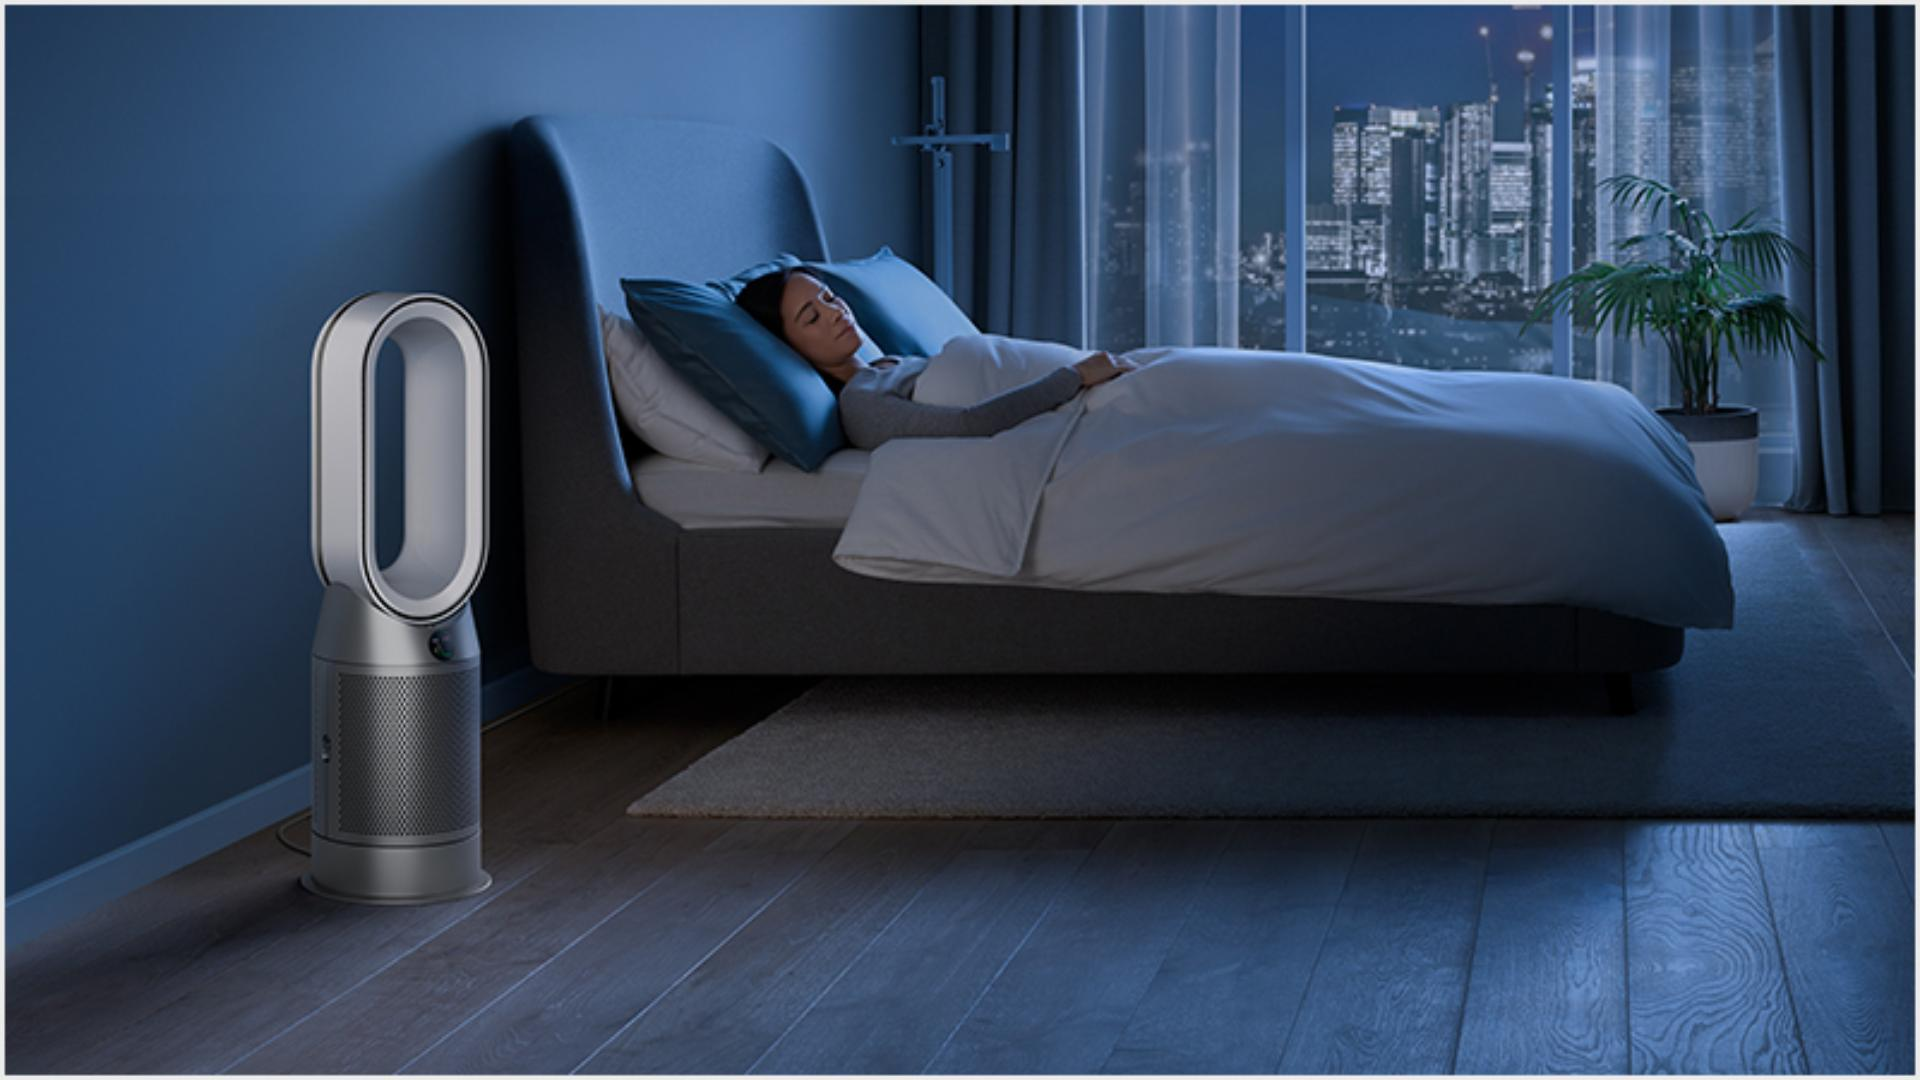 Someone sleeping peacefully in a hotel room purified by a Dyson purifier